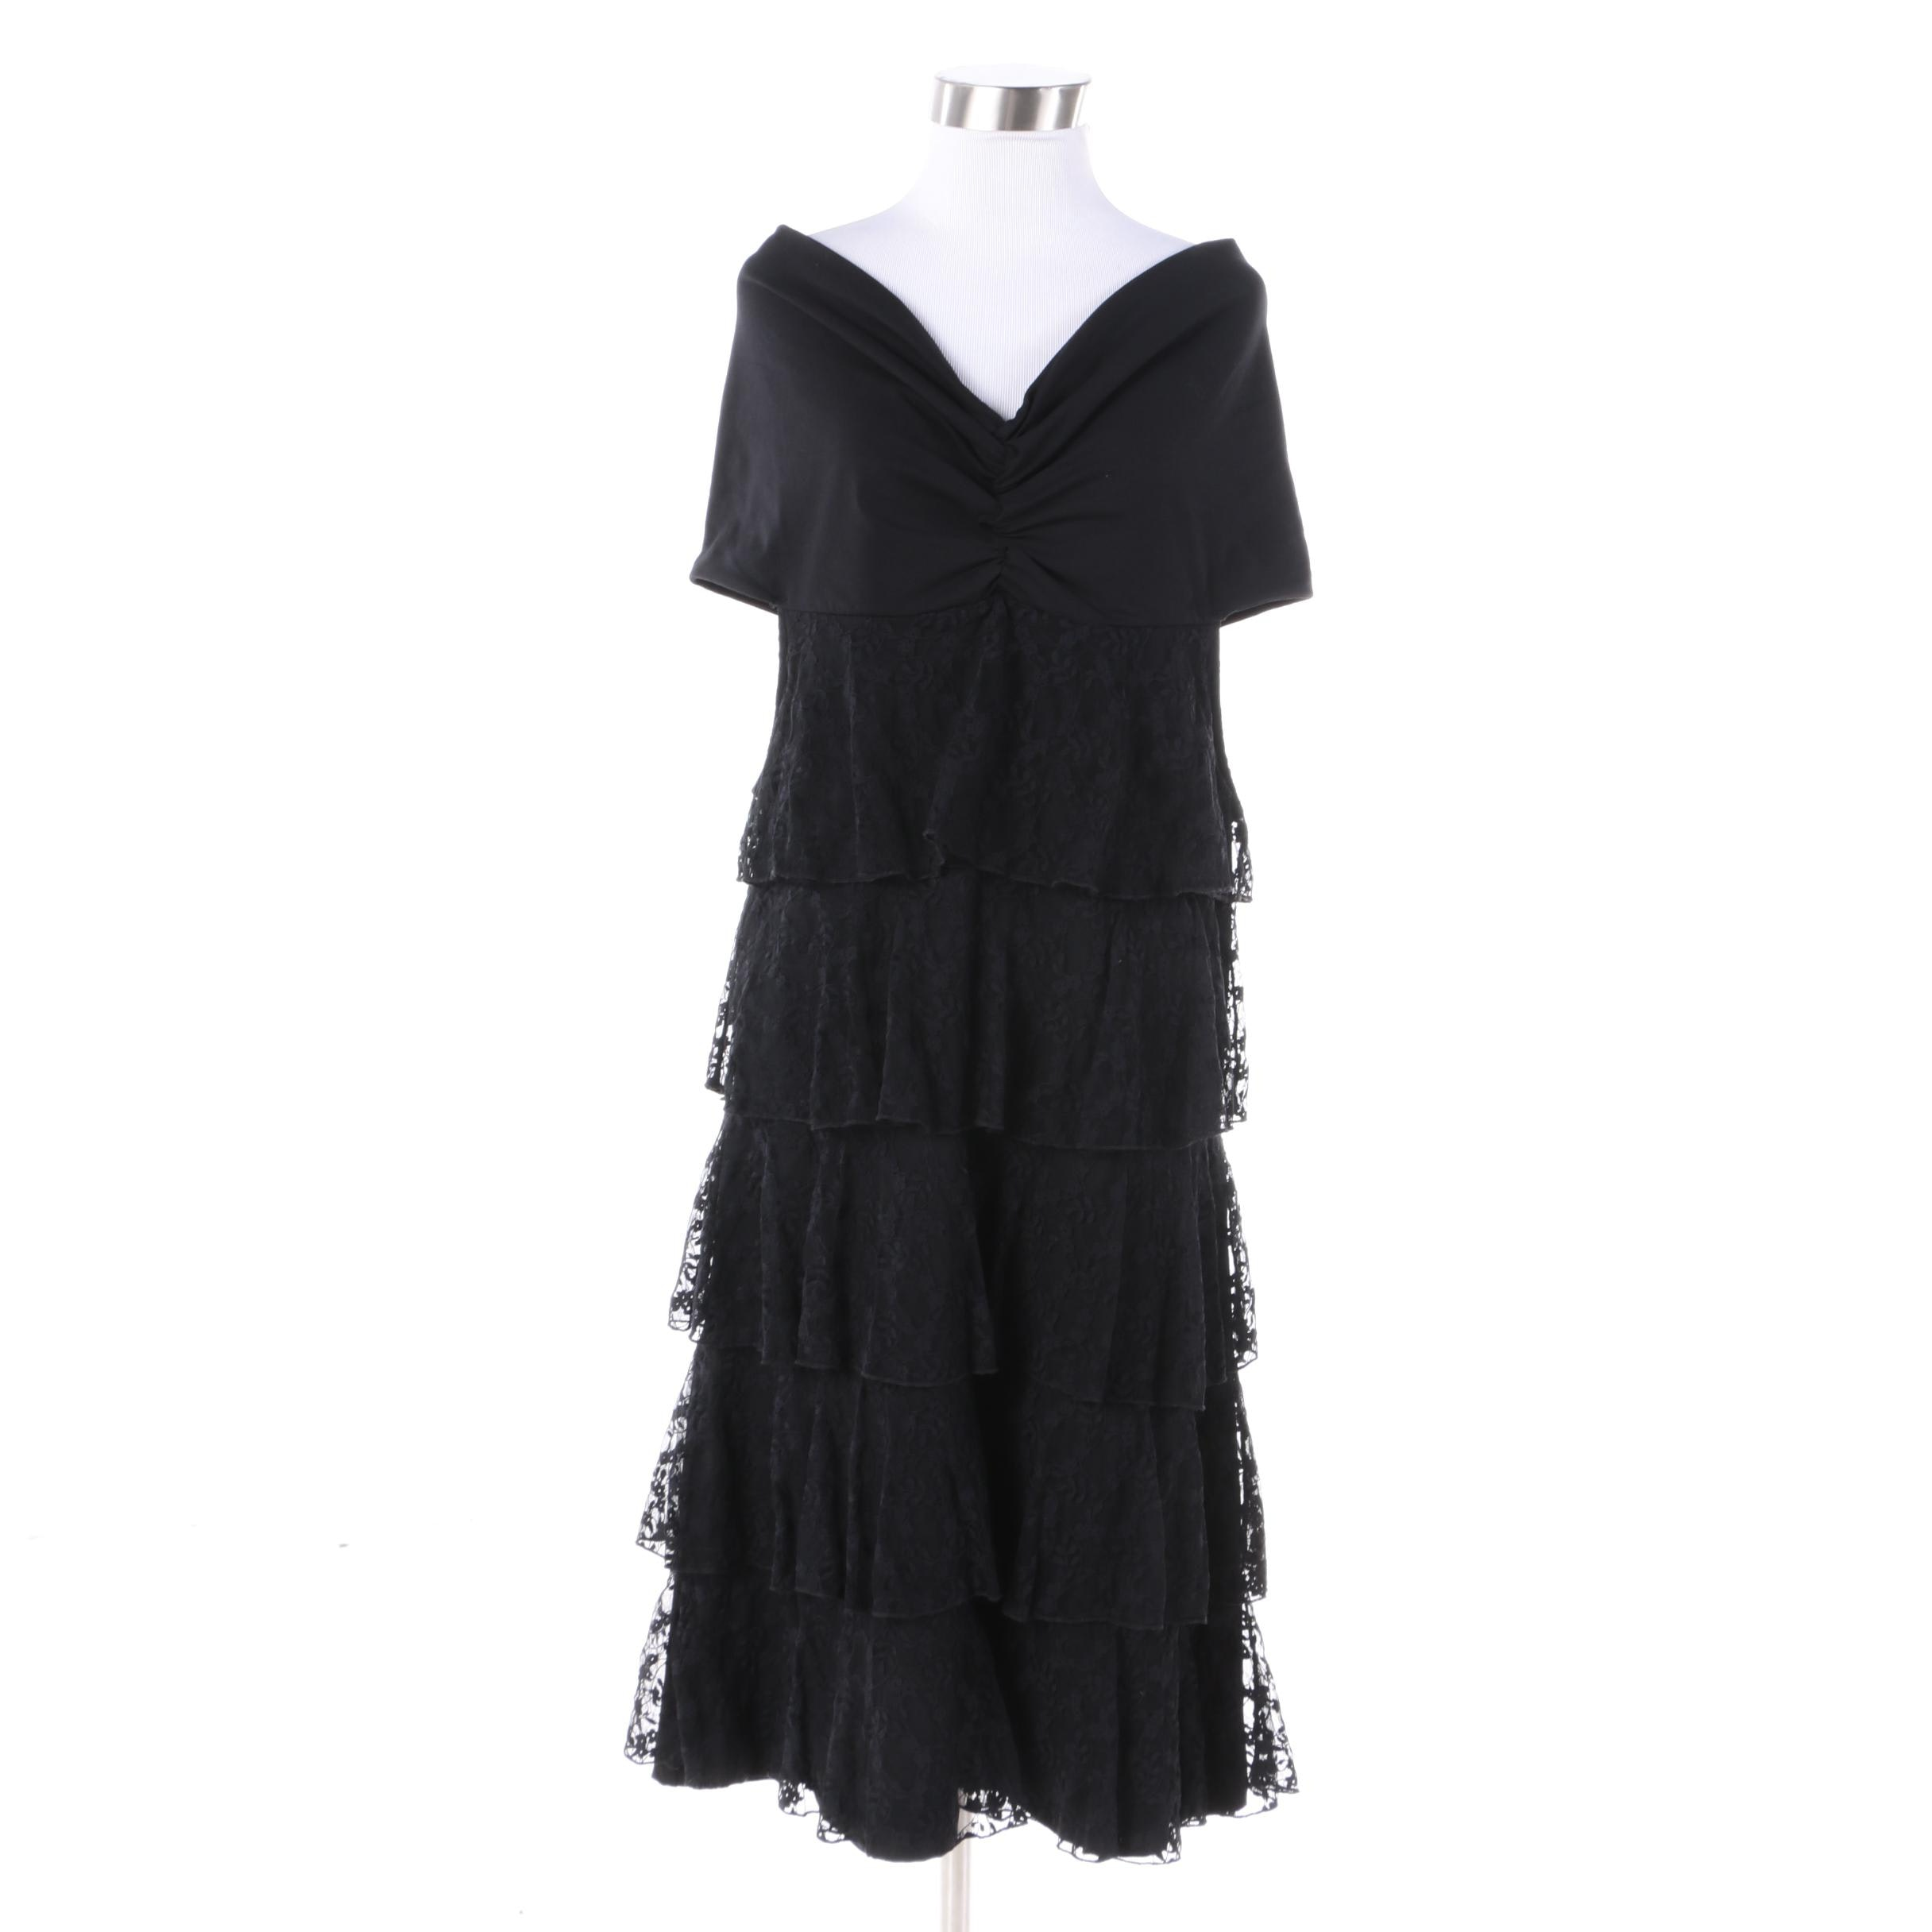 Anne Fontaine Mirage Off-the-Shoulder Black Cocktail Dress with Tiered Ruffles